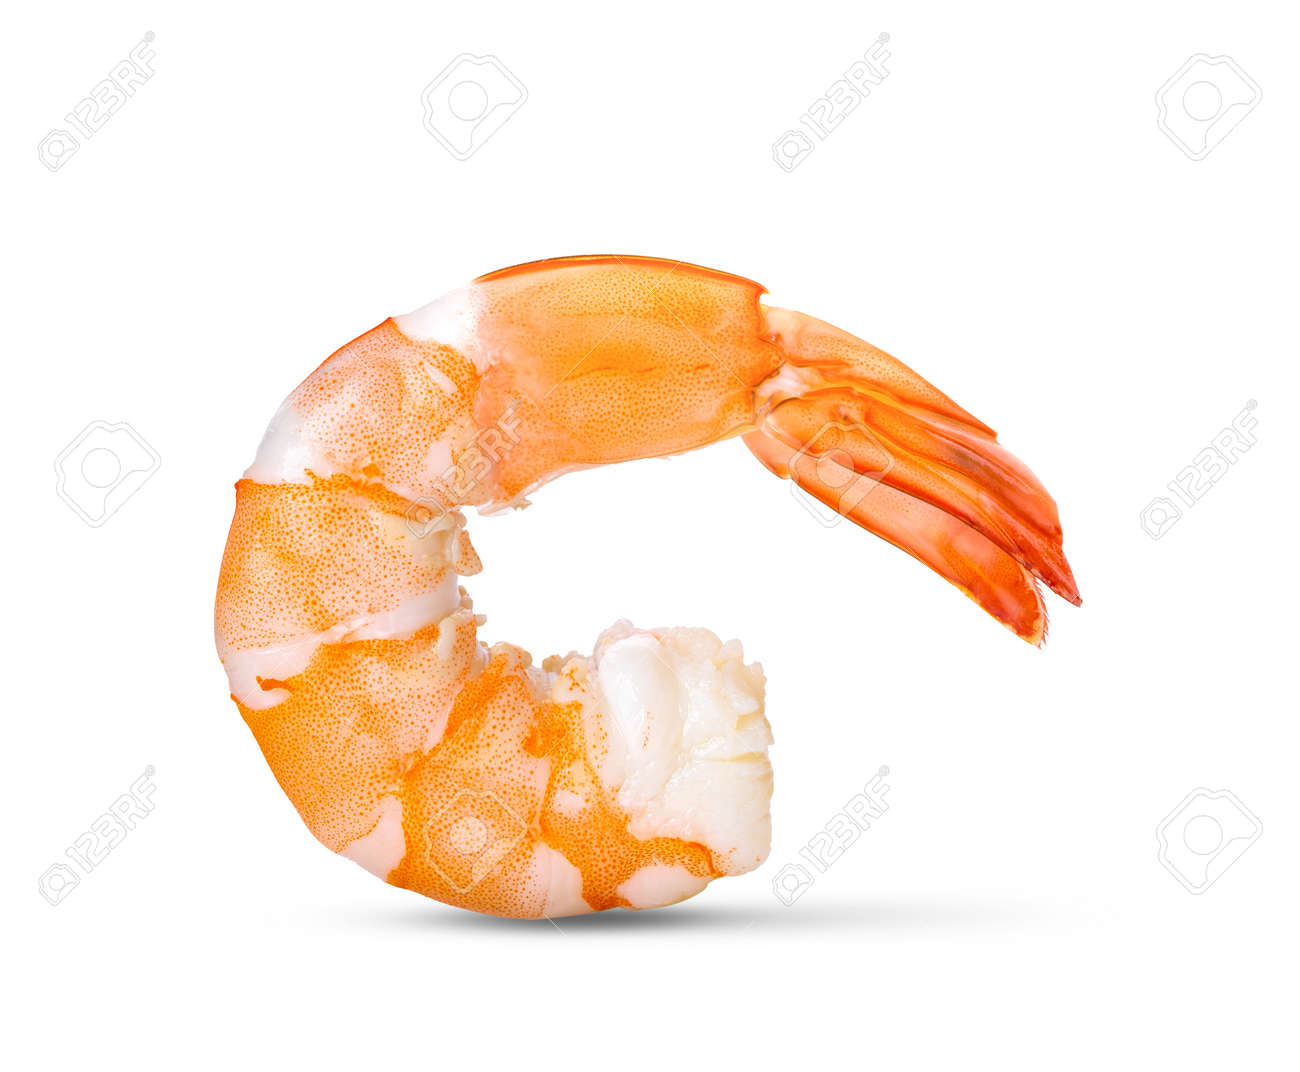 Cooked shrimps isolated on white background. - 156628266